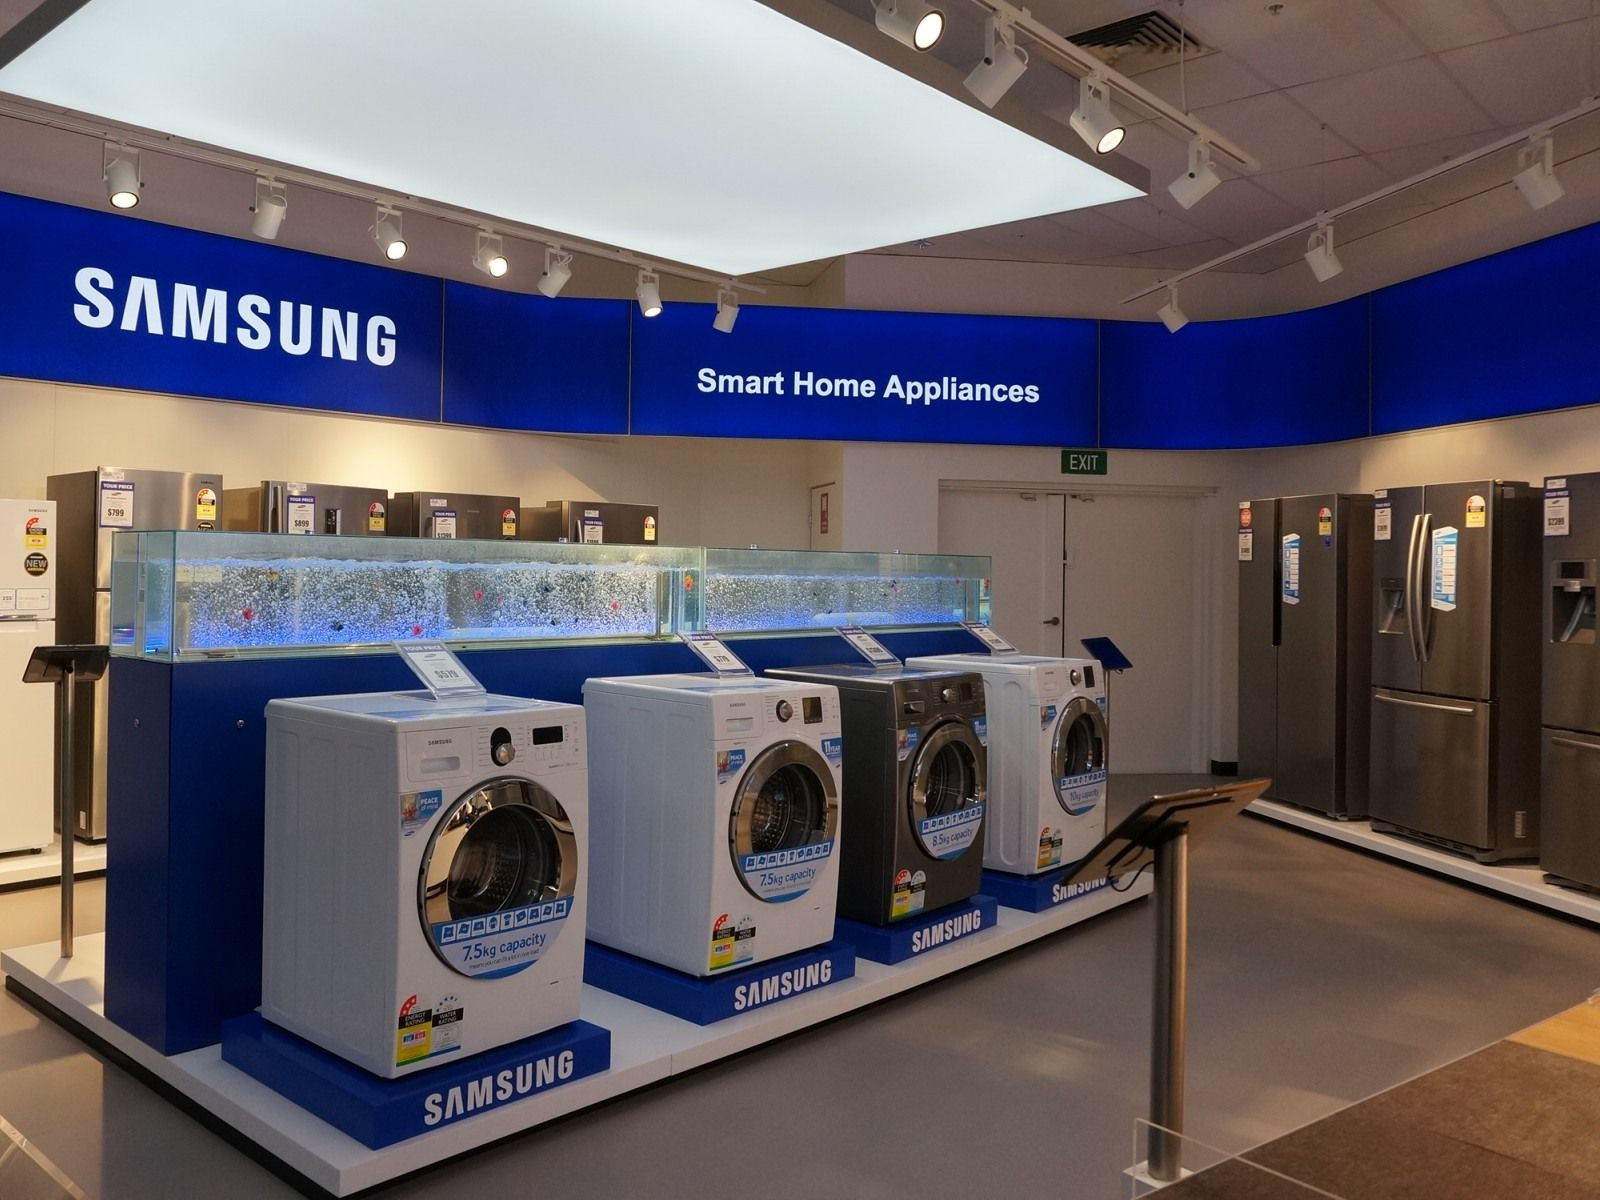 Inside Samsung S New Total Retail Appliance Display At Bing Lee Image Gallery Appliance Retailer Home Appliances Smart Home Appliances Smart Home